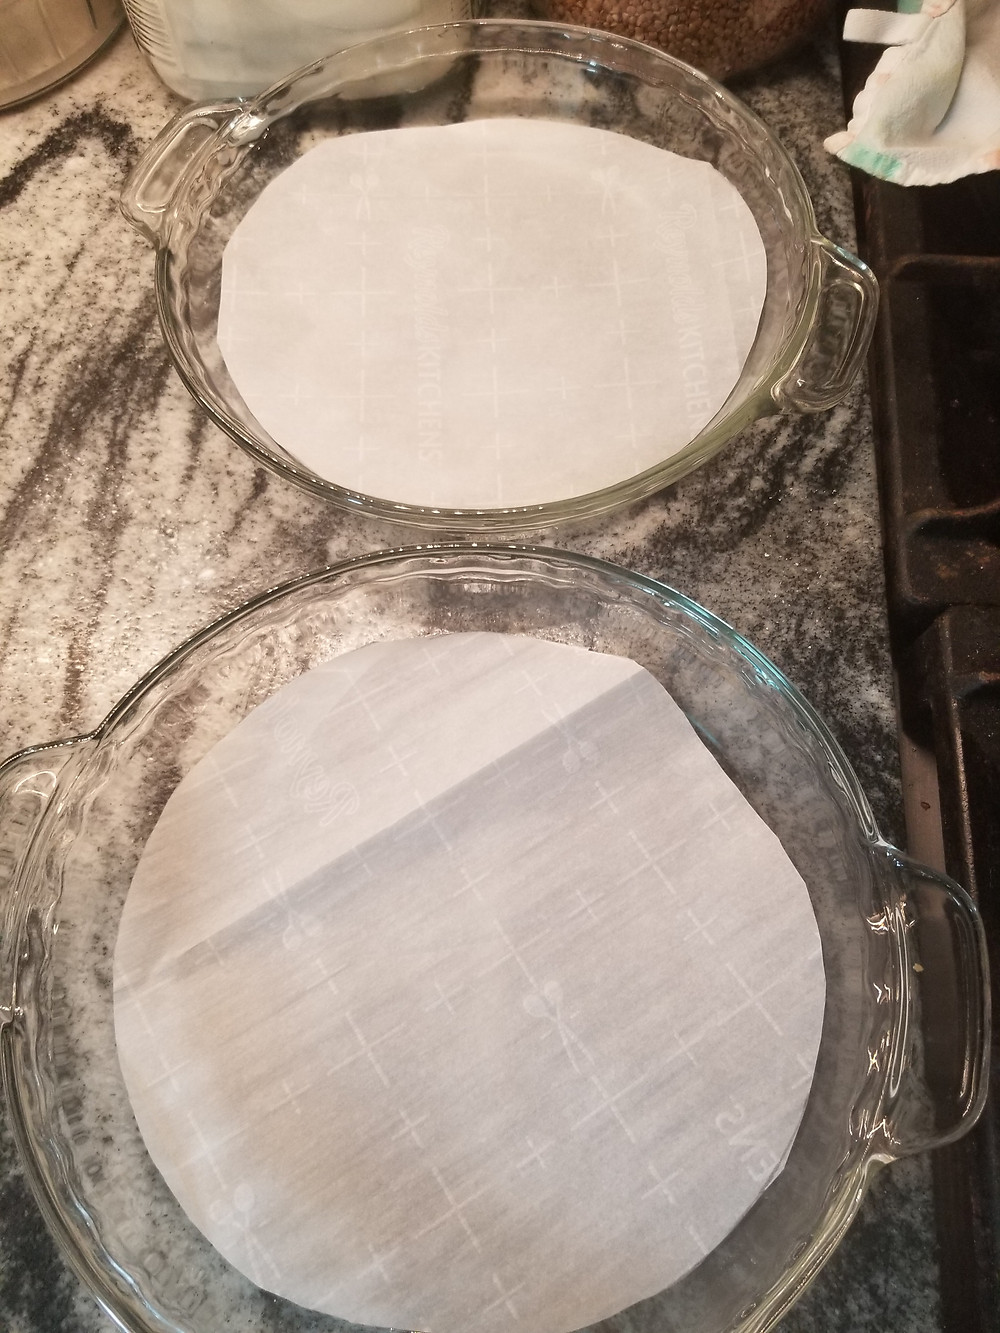 Two baking dishes lined with baking paper